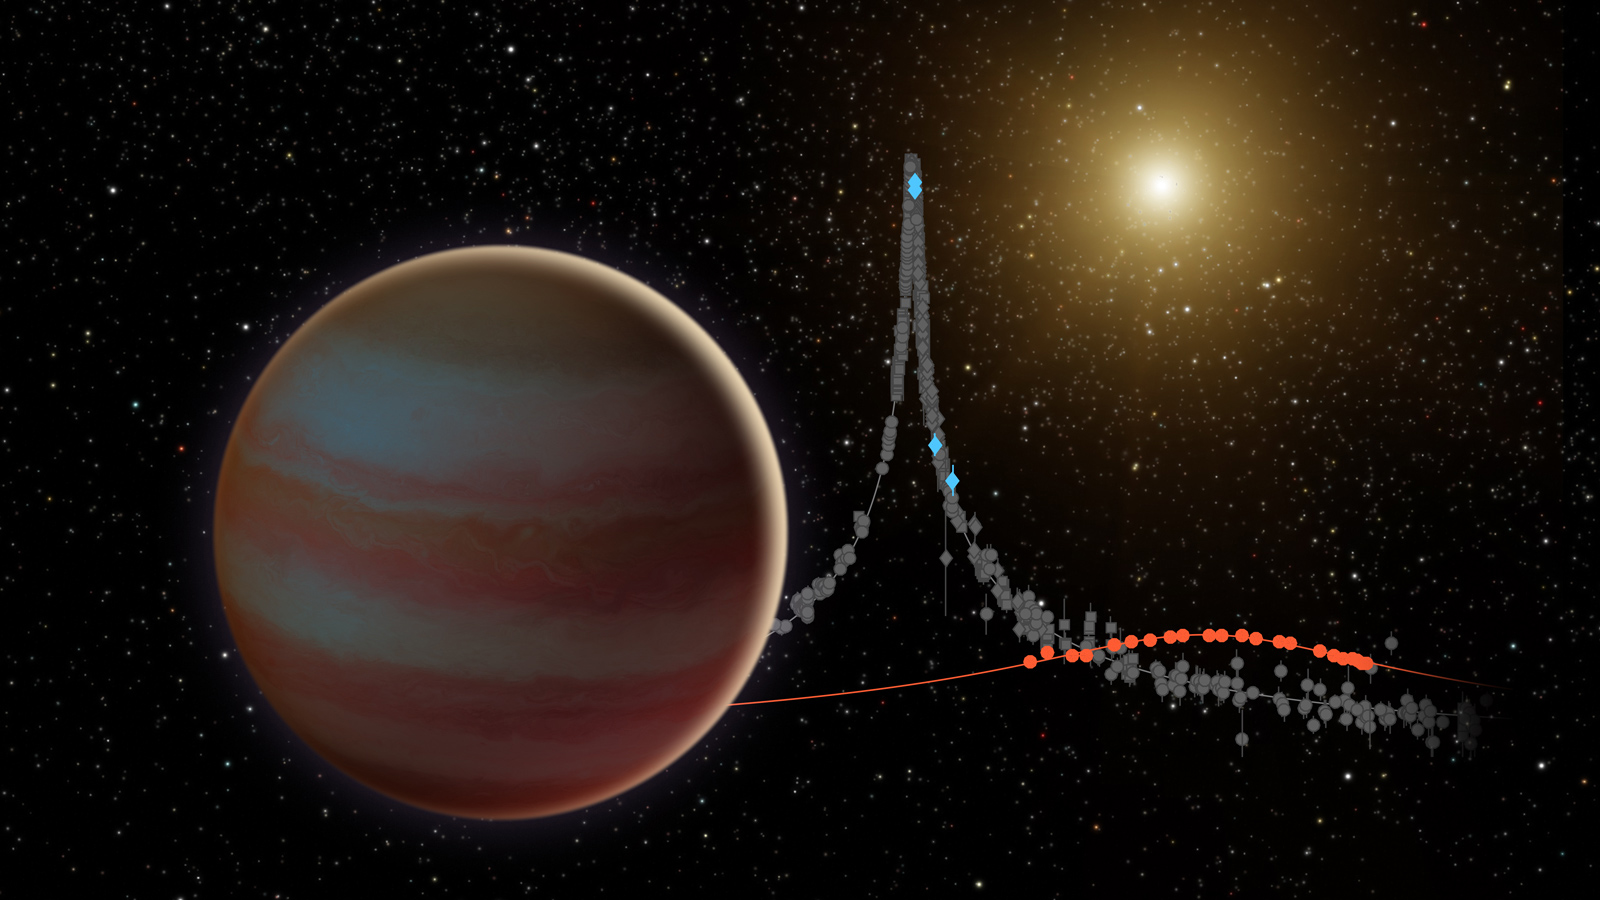 This illustration depicts a newly discovered brown dwarf, an object that weighs in somewhere between our solar system's most massive planet (Jupiter) and the least-massive-known star. This brown dwarf, dubbed OGLE-2015-BLG-1319, interests astronomers because it may fall in the